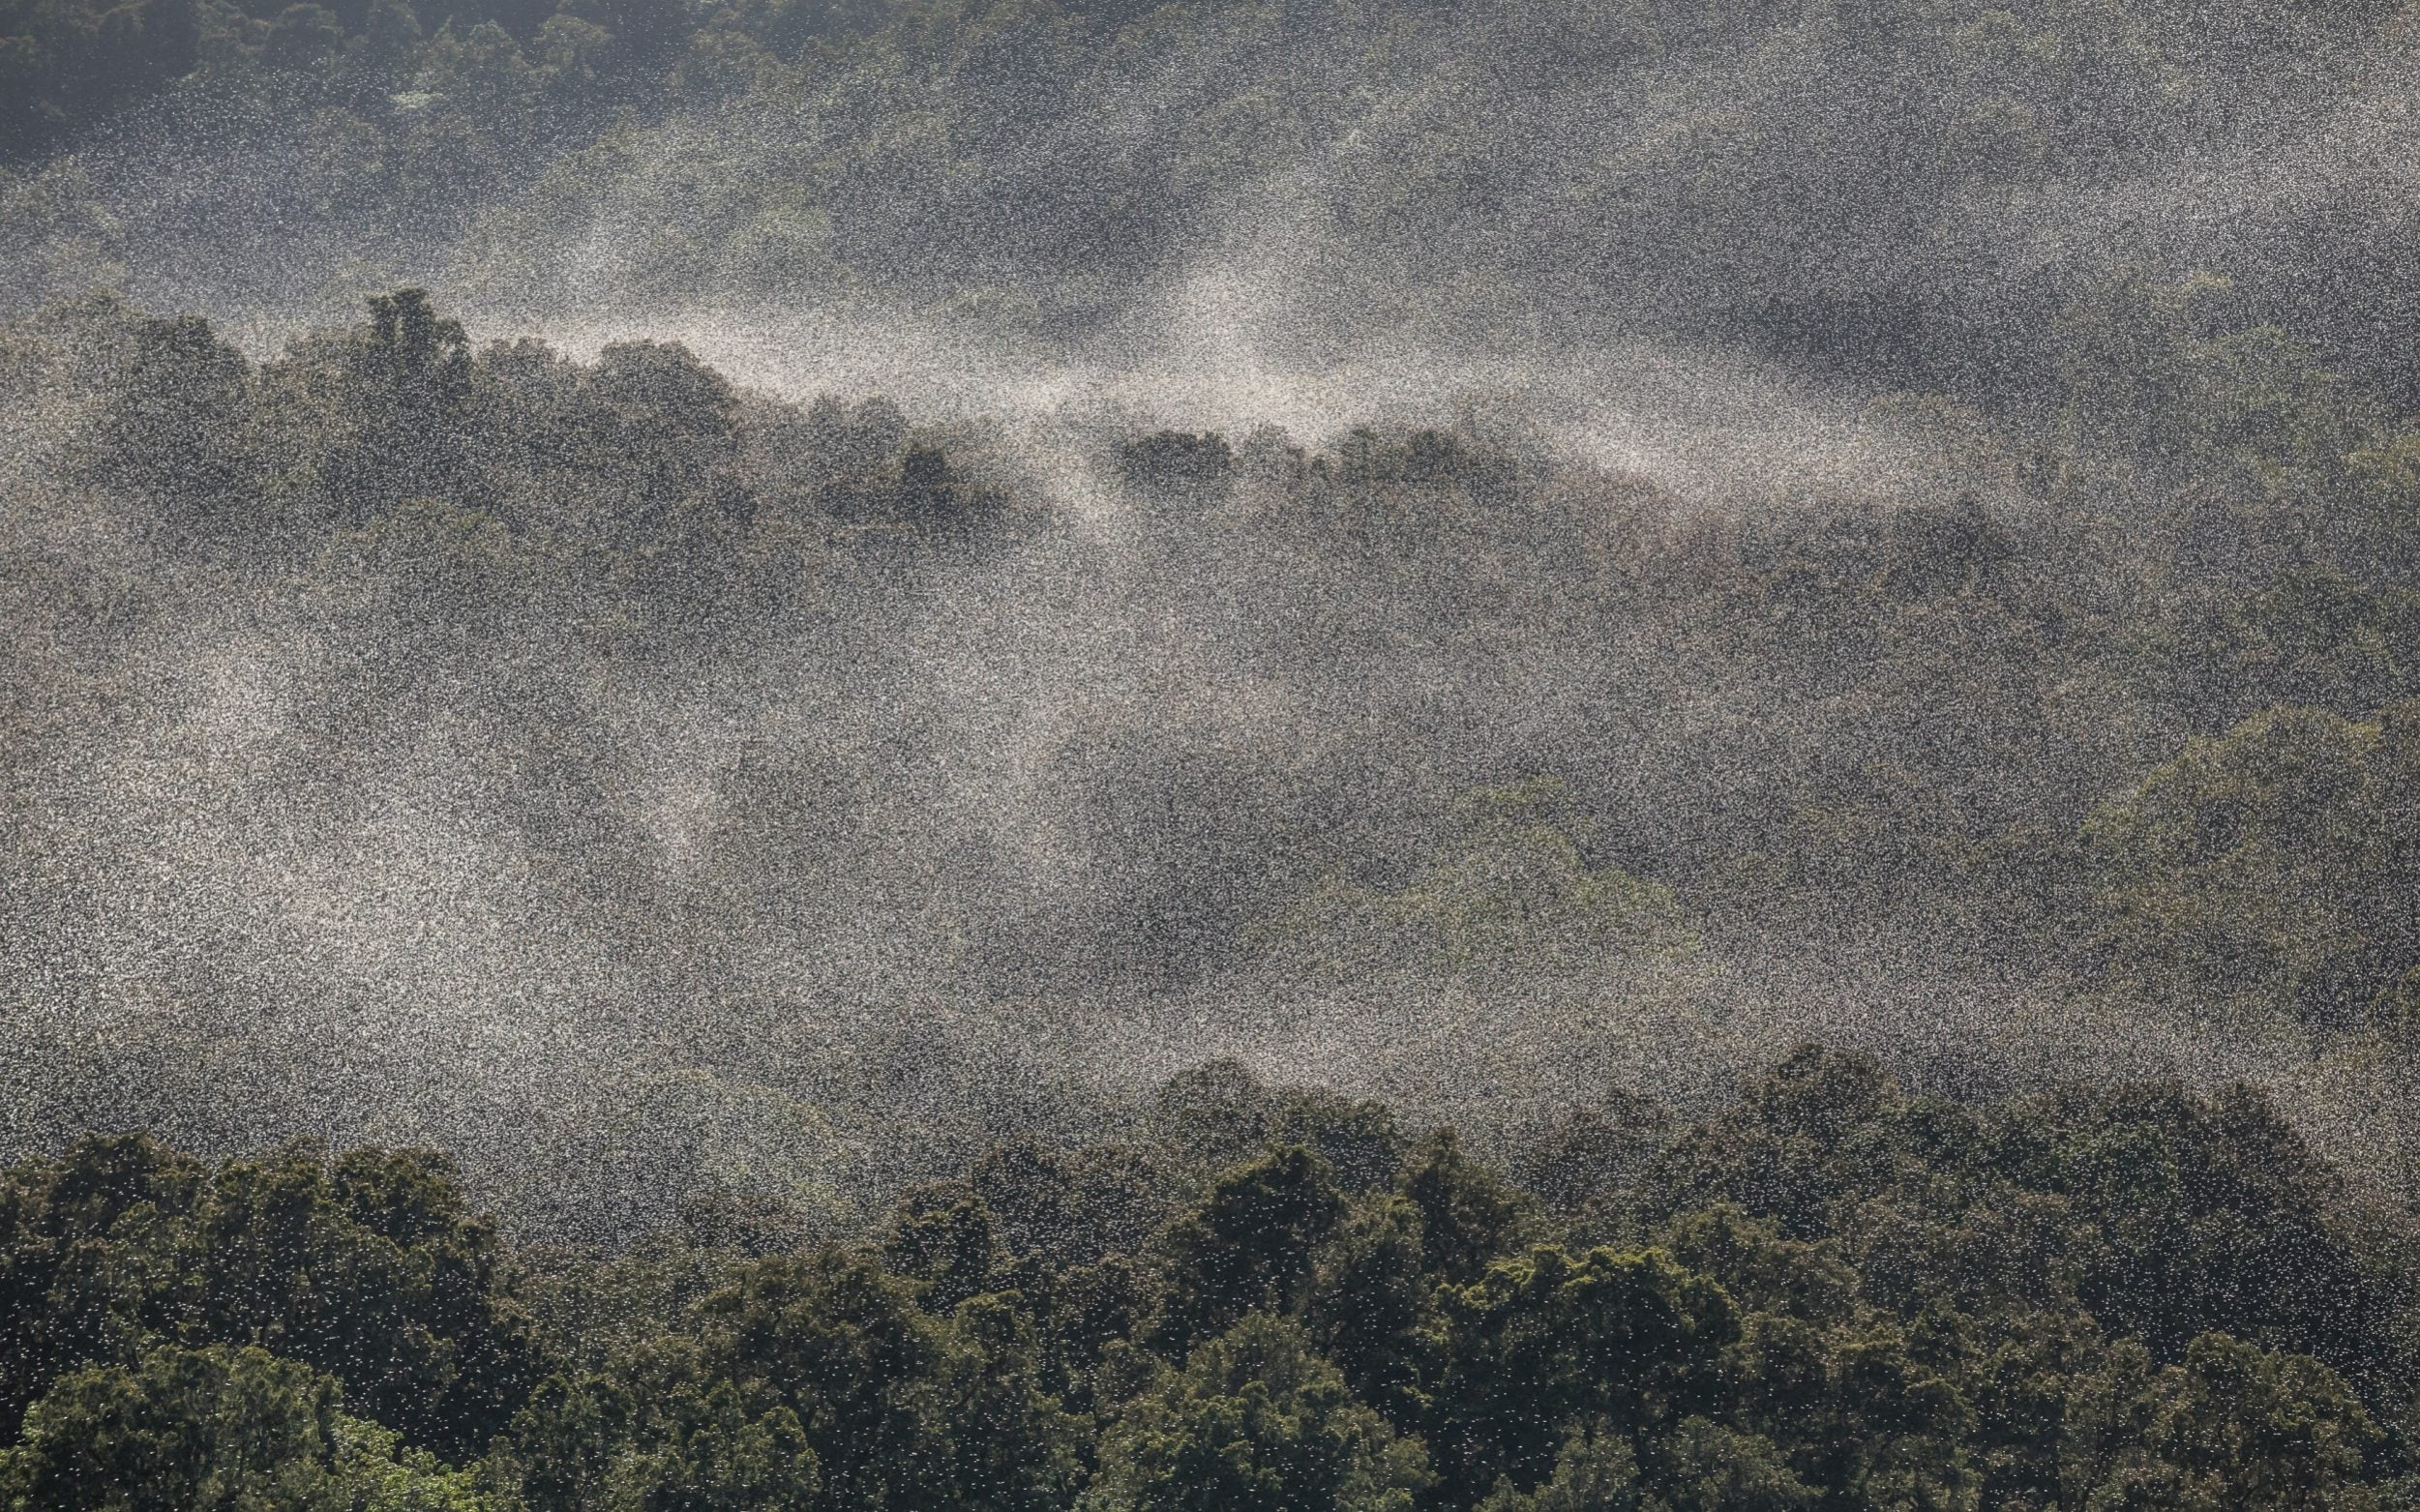 Swarms of locust fly above the forest in Samburu County, Kenya